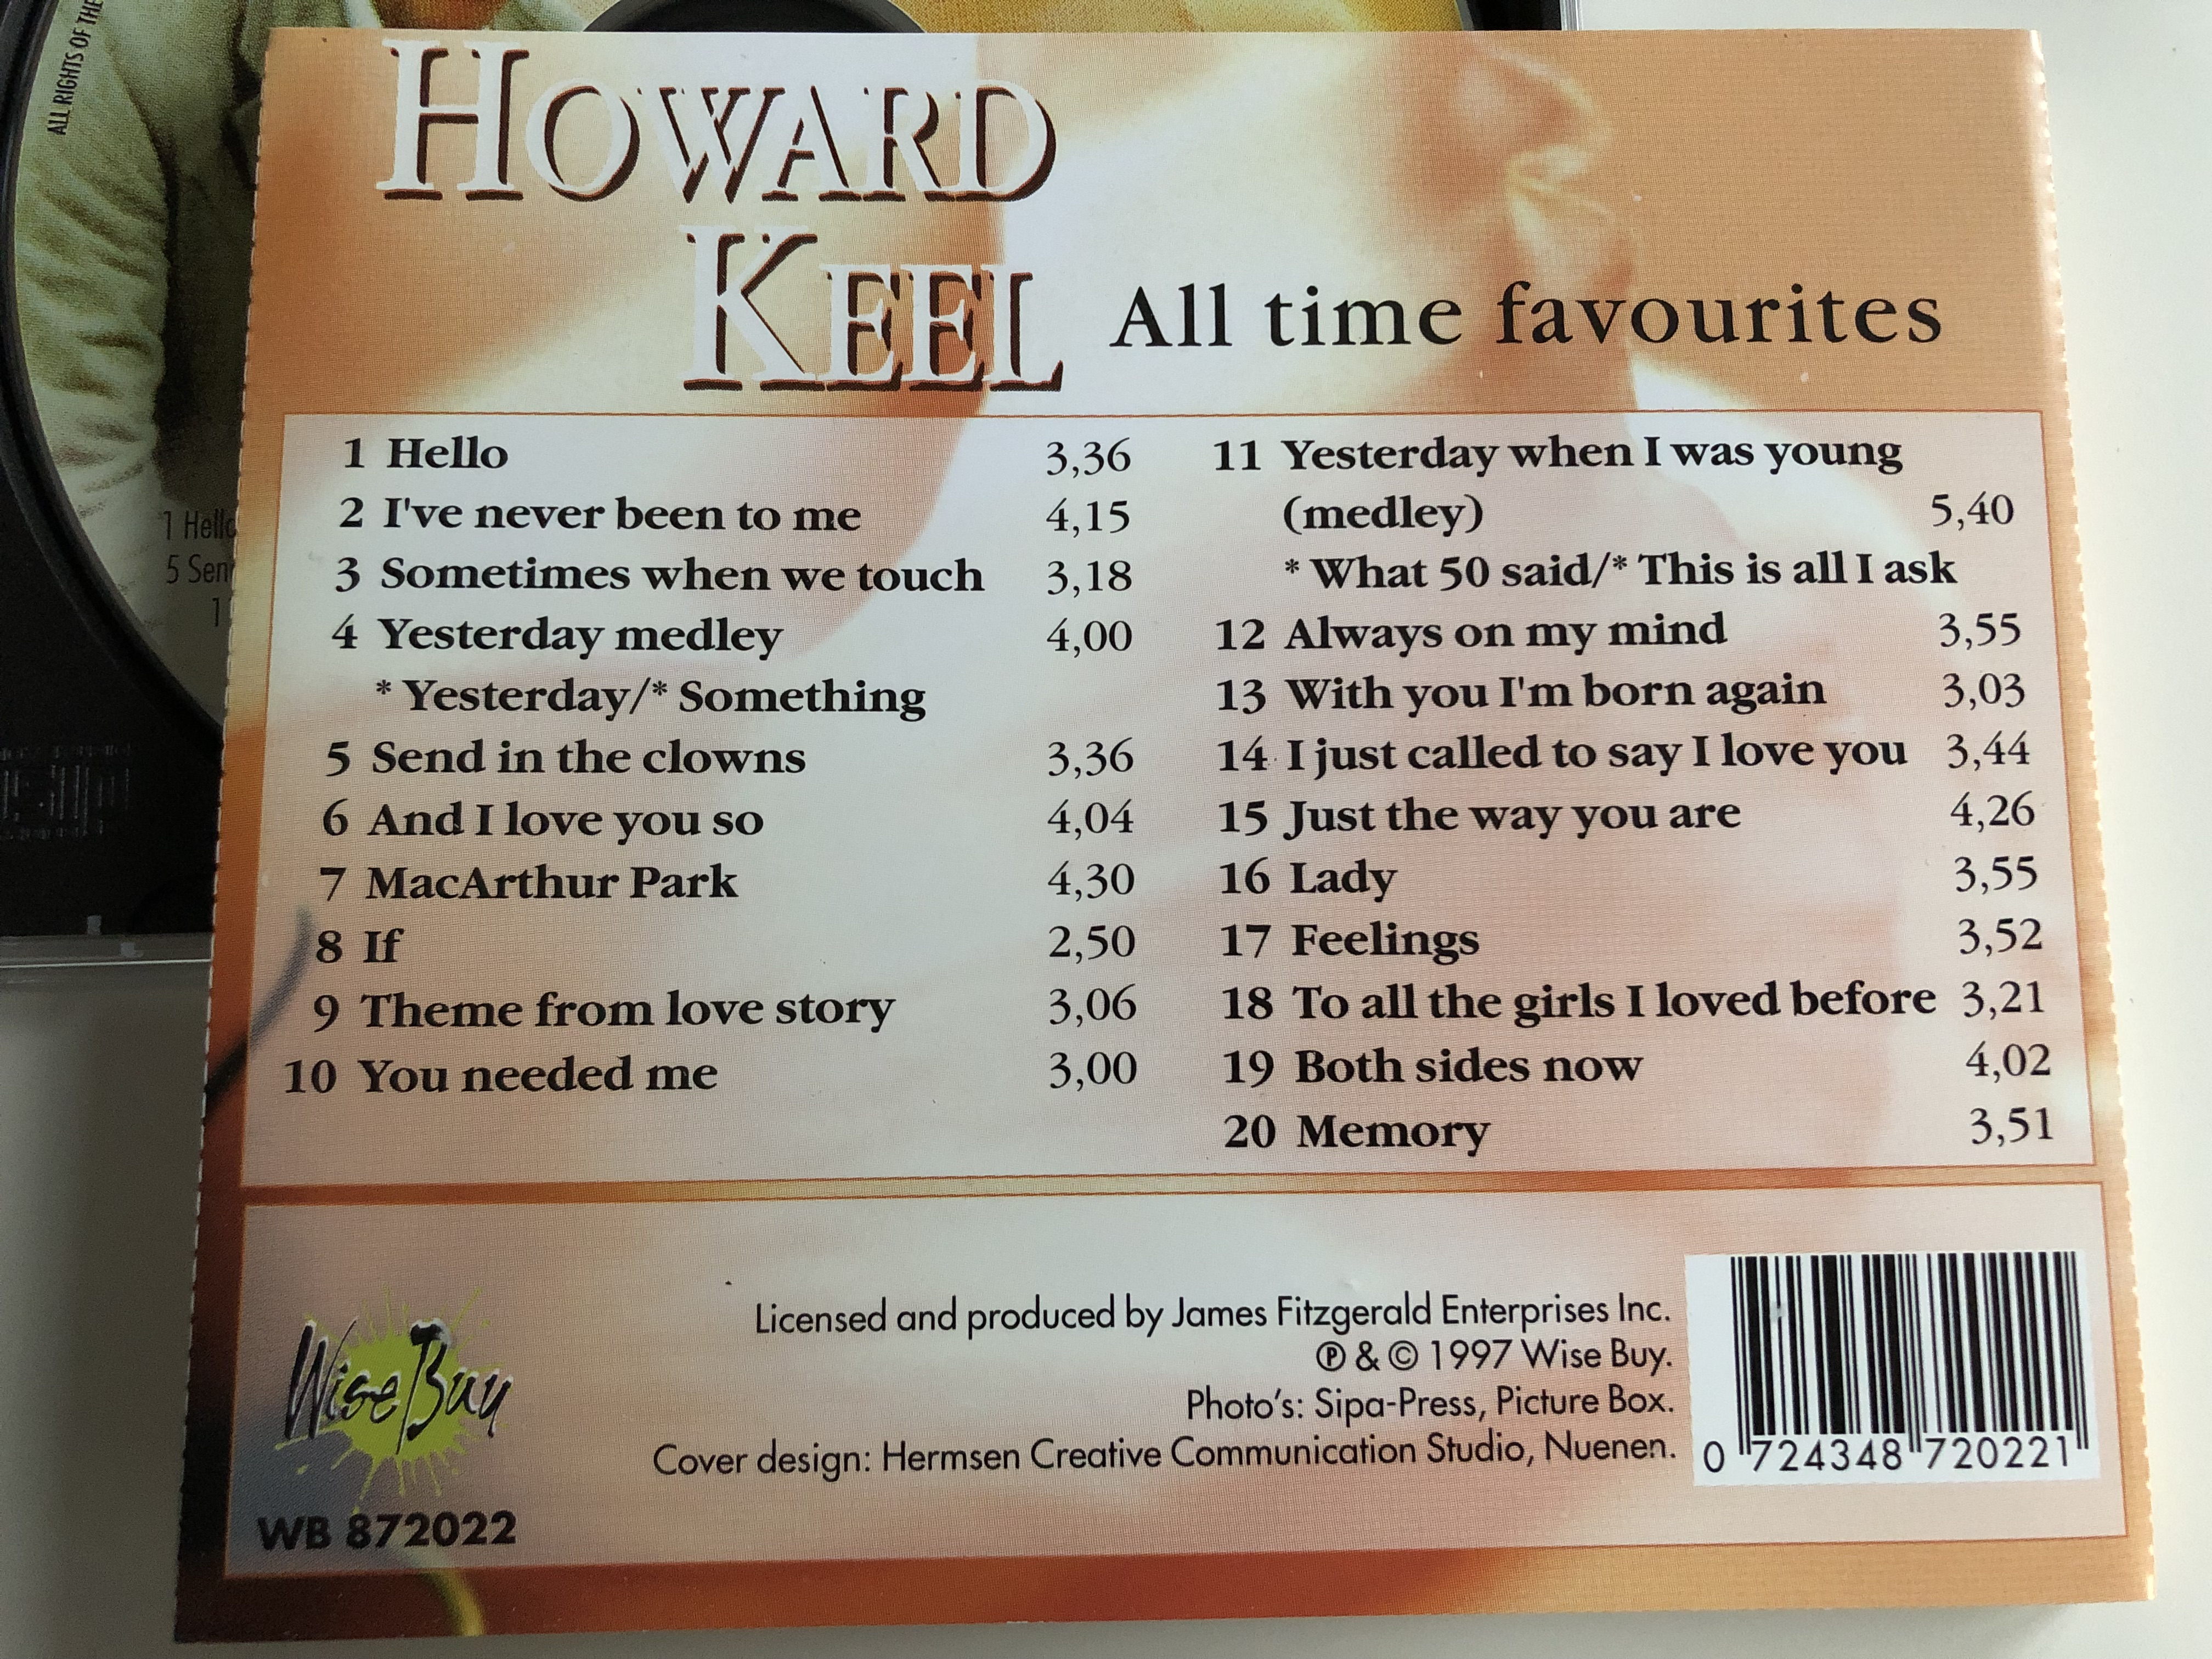 howard-keel-all-time-favourites-to-all-the-girls-i-loved-before-send-in-the-clowns-you-needed-me-with-you-i-m-born-again-lady-wise-buy-audio-cd-1997-wb-872022-4-.jpg